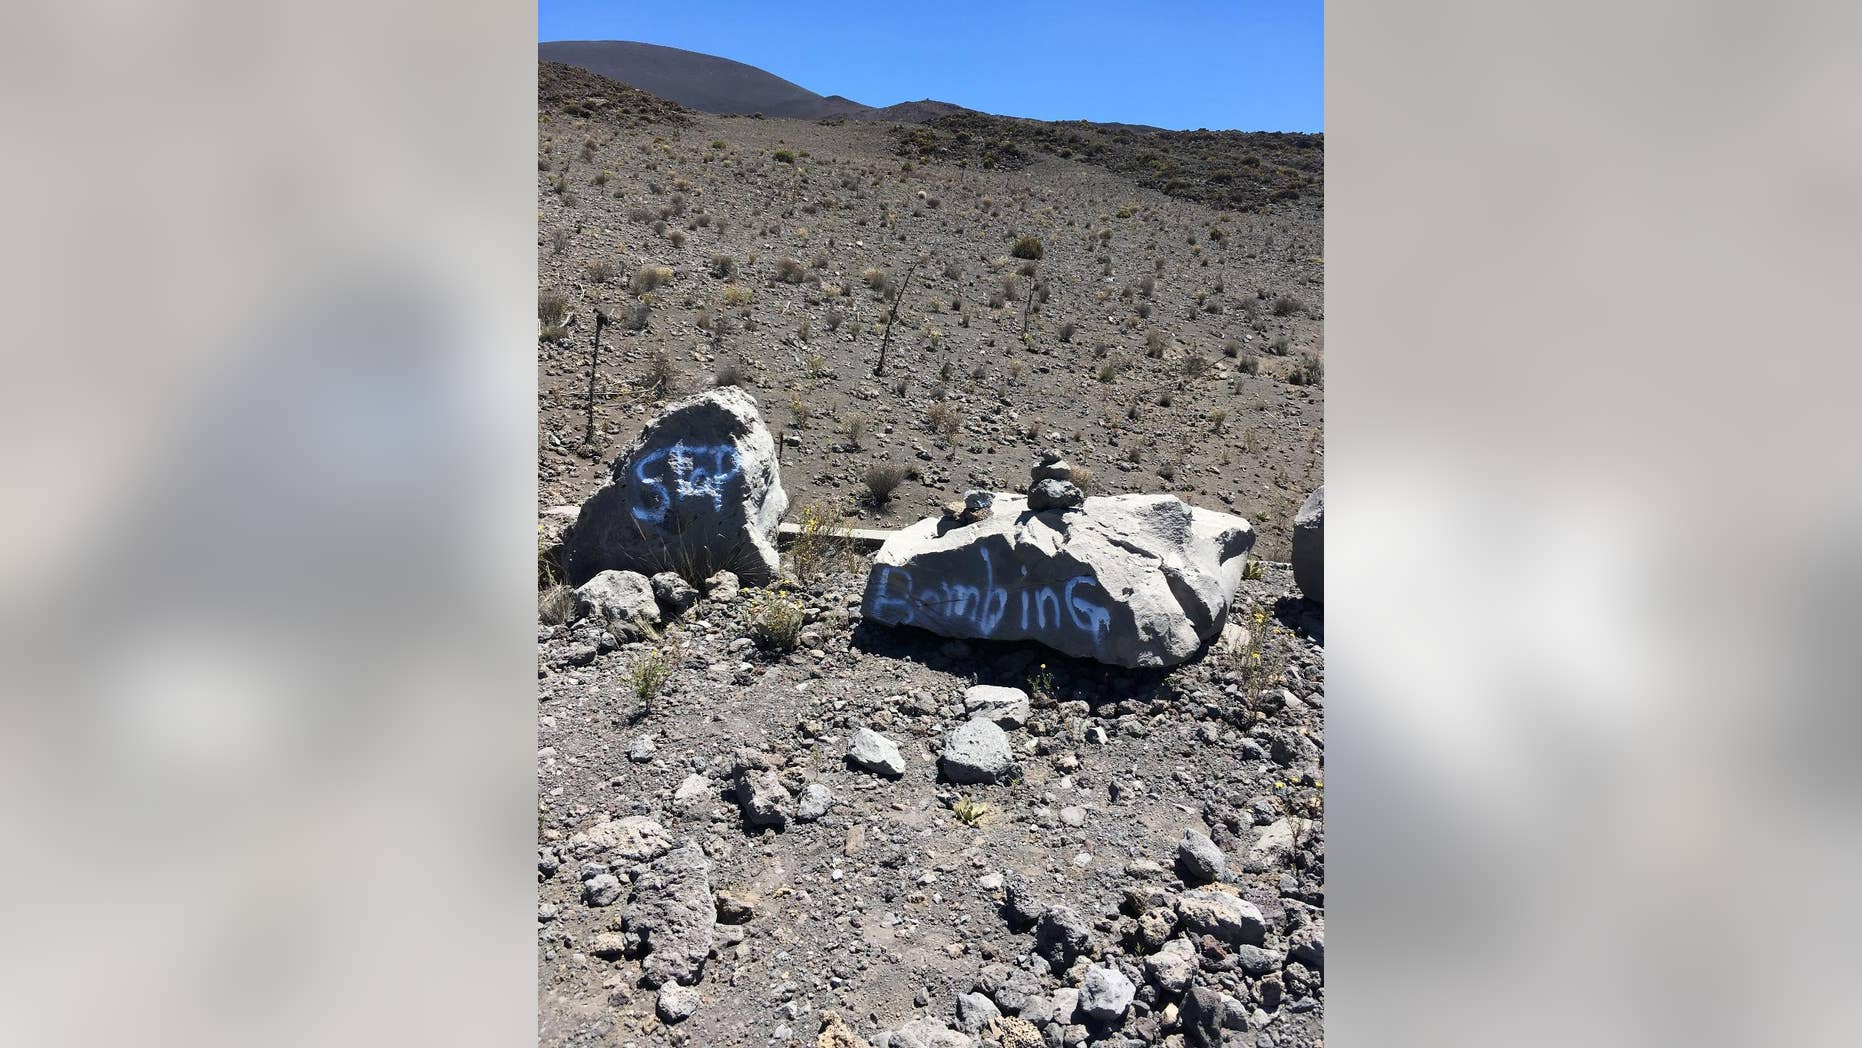 This undated photo provided by the Hawaii Department of Land and Natural Resources shows graffiti within a protected area on one of Hawaii's most revered mountains in the Mauna Kea Ice Age Reserve. The department said the graffiti was found on April 28, 2017, and authorities are asking for the public's help in finding out who painted the graffiti. (Hawaii Department of Land and Natural Resources via AP)